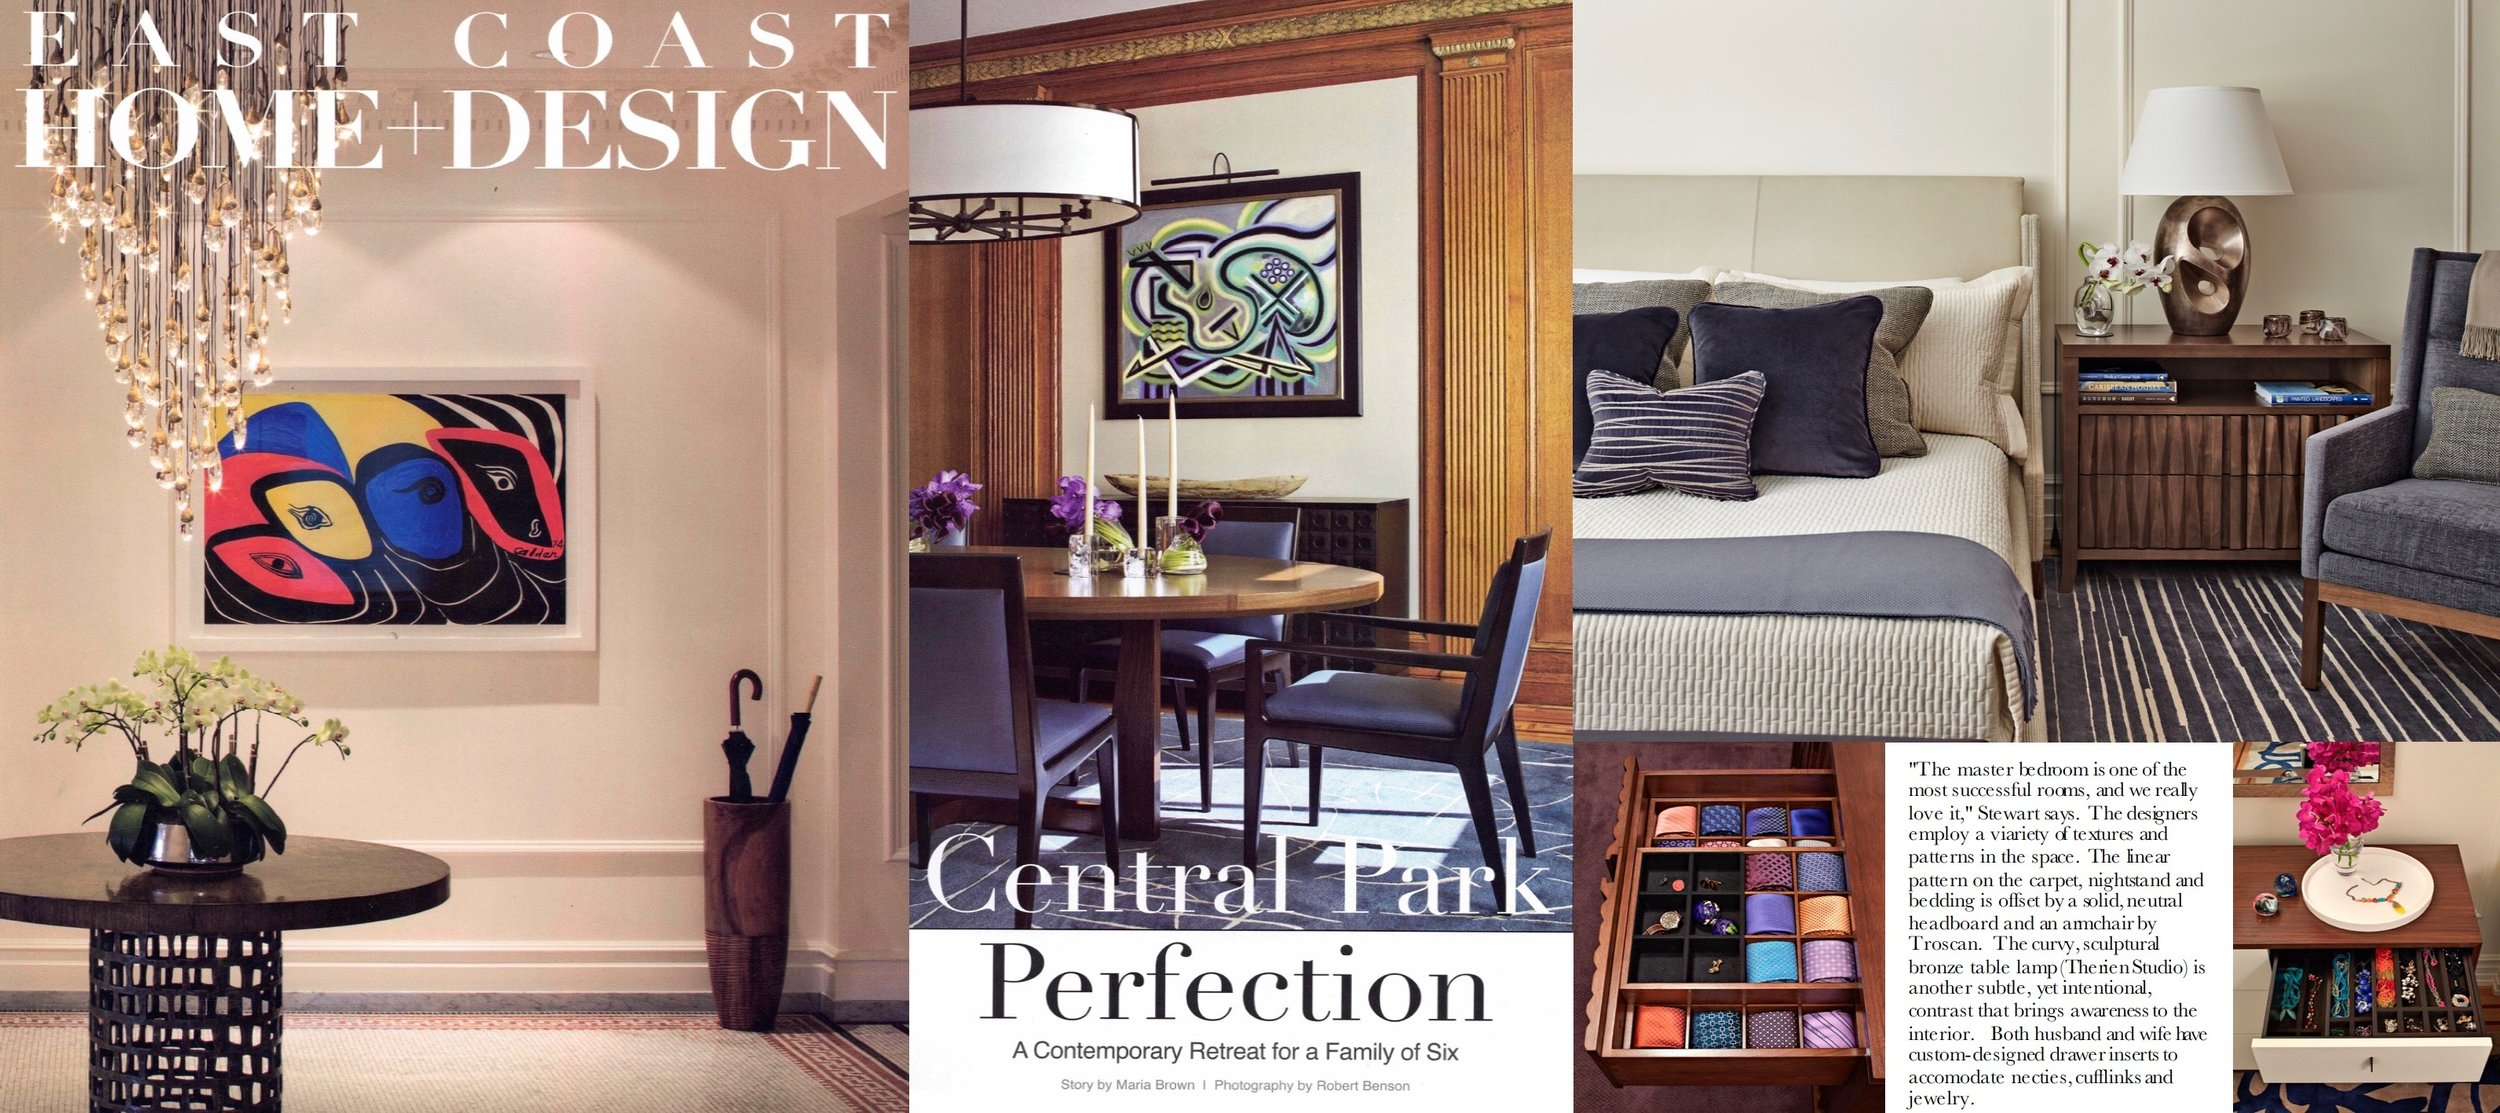 - Central Park Duplex Apartment as featured on the cover of EAST COAST HOME + DESIGN. Click on image for more.